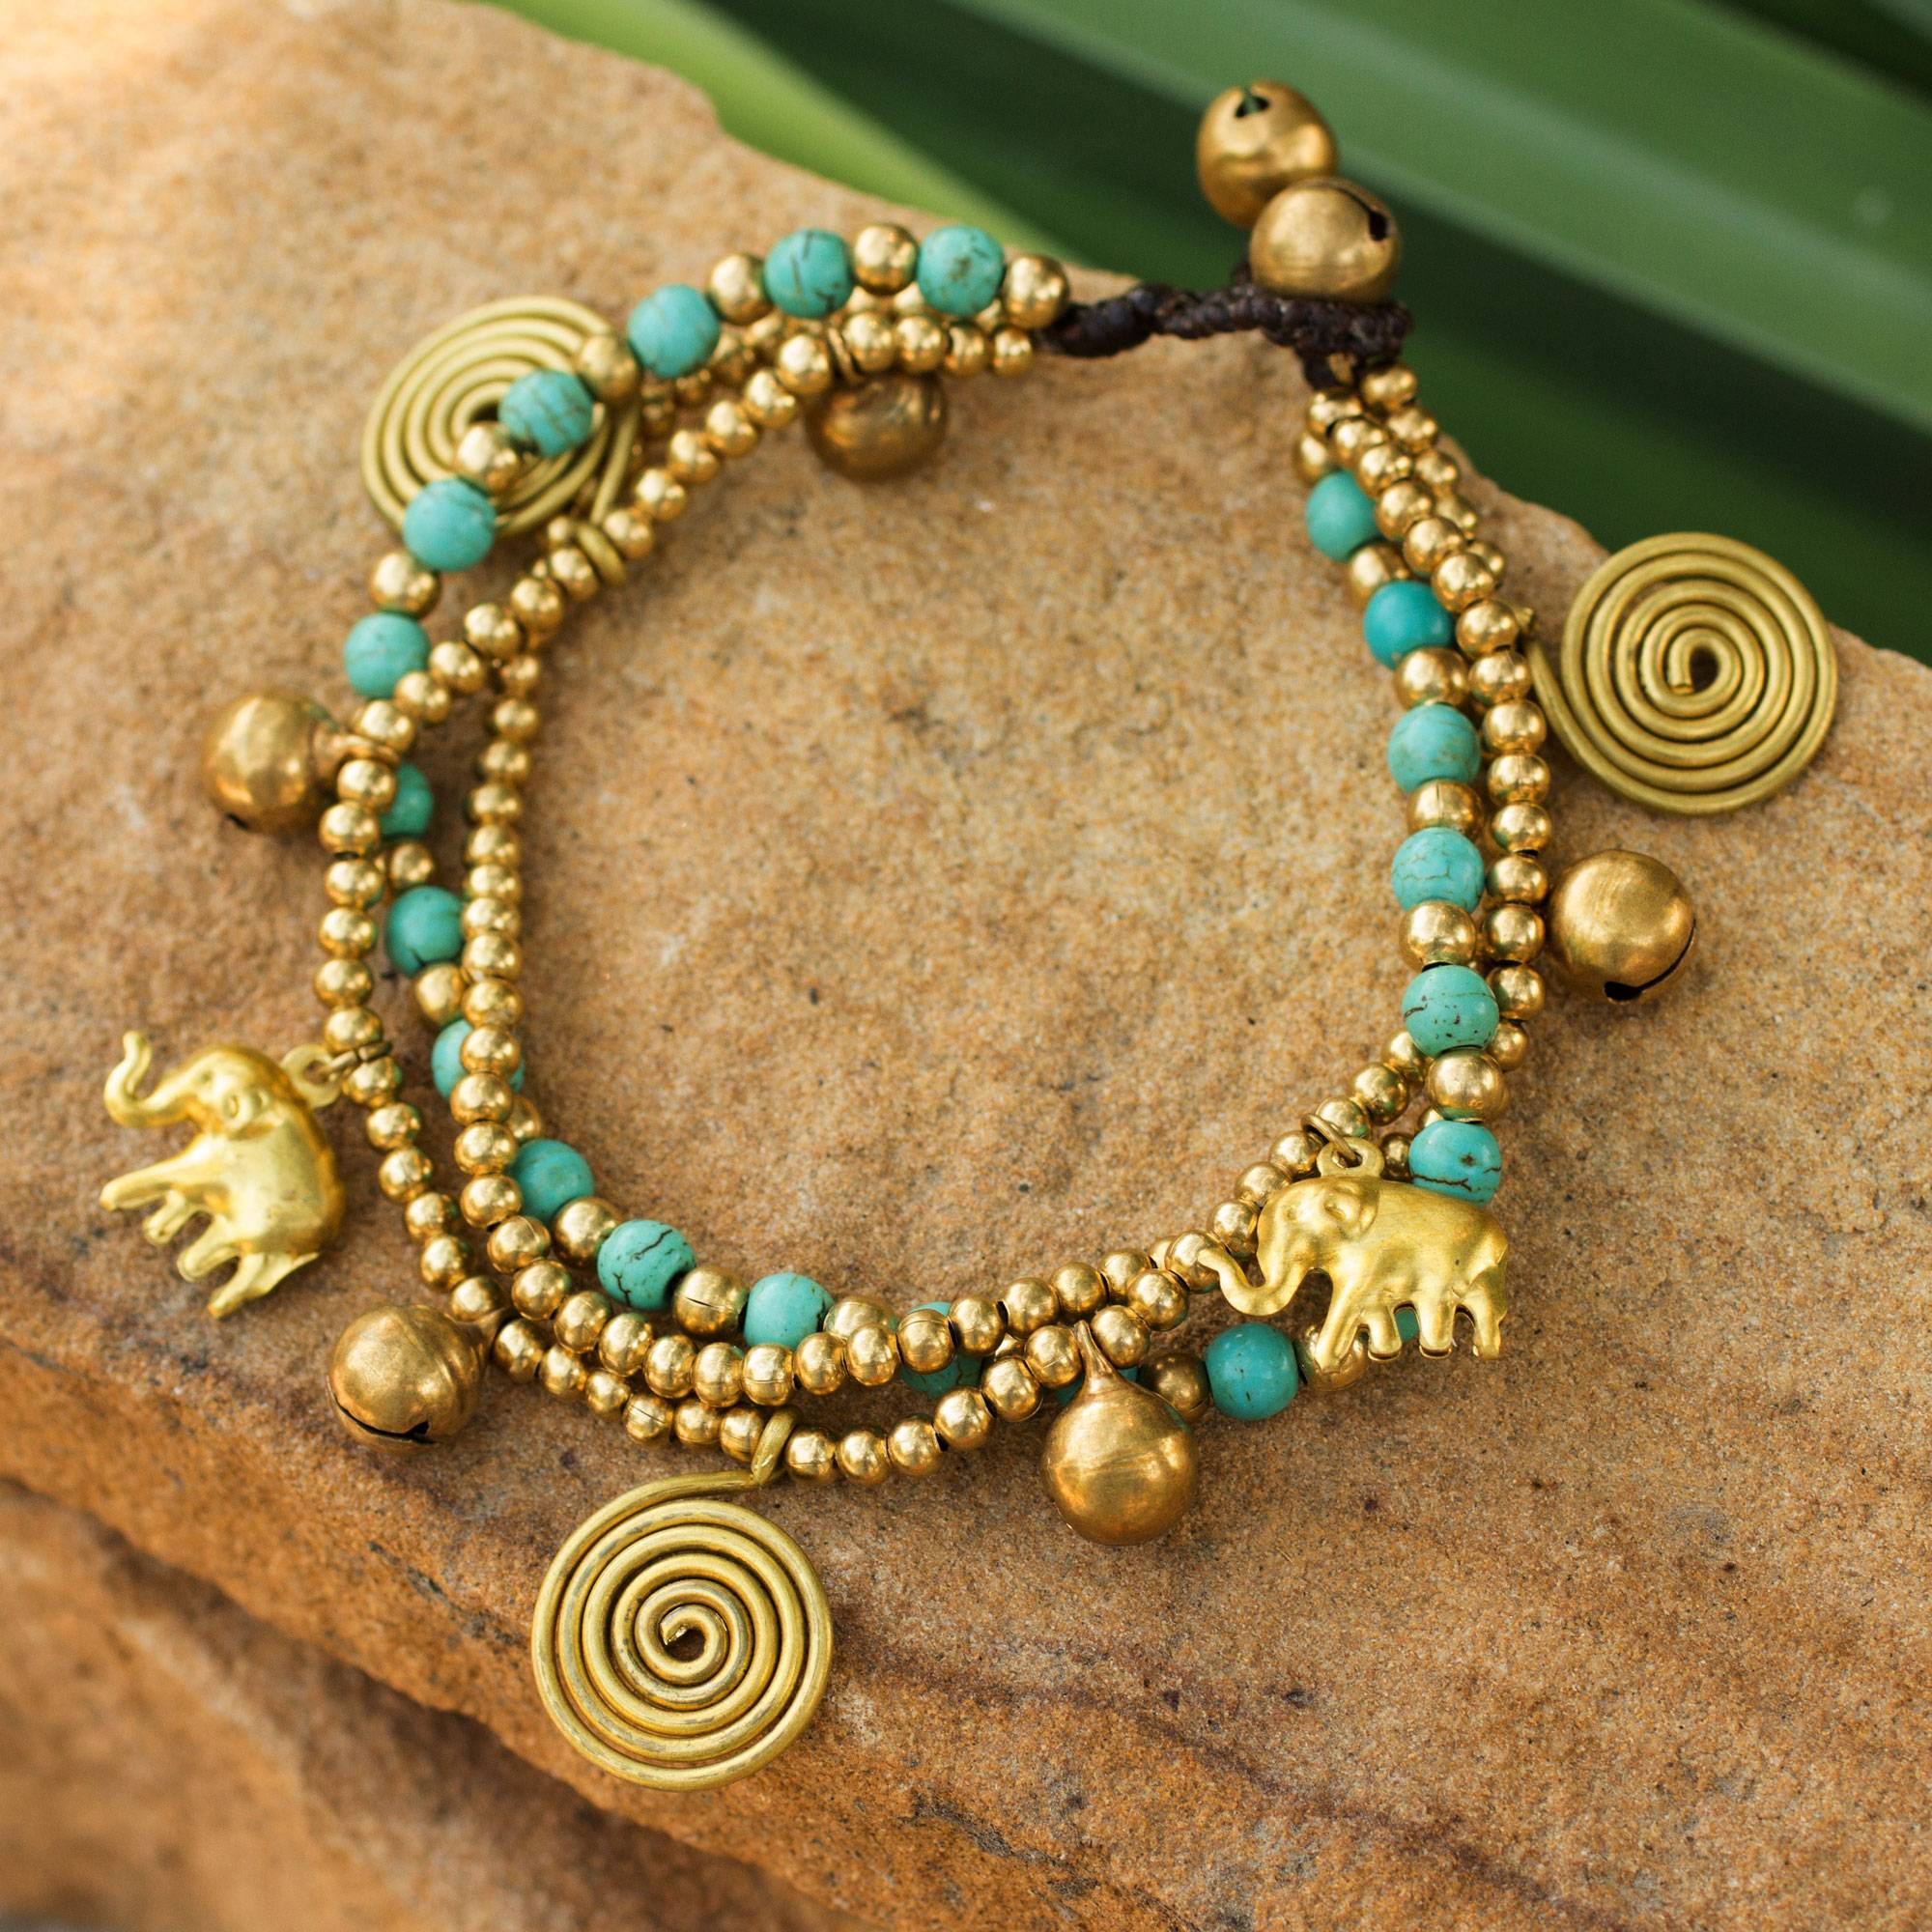 Hand crafted brass charm bracelet from thailand blue siam hand crafted brass charm bracelet from thailand blue siam elephants novica buycottarizona